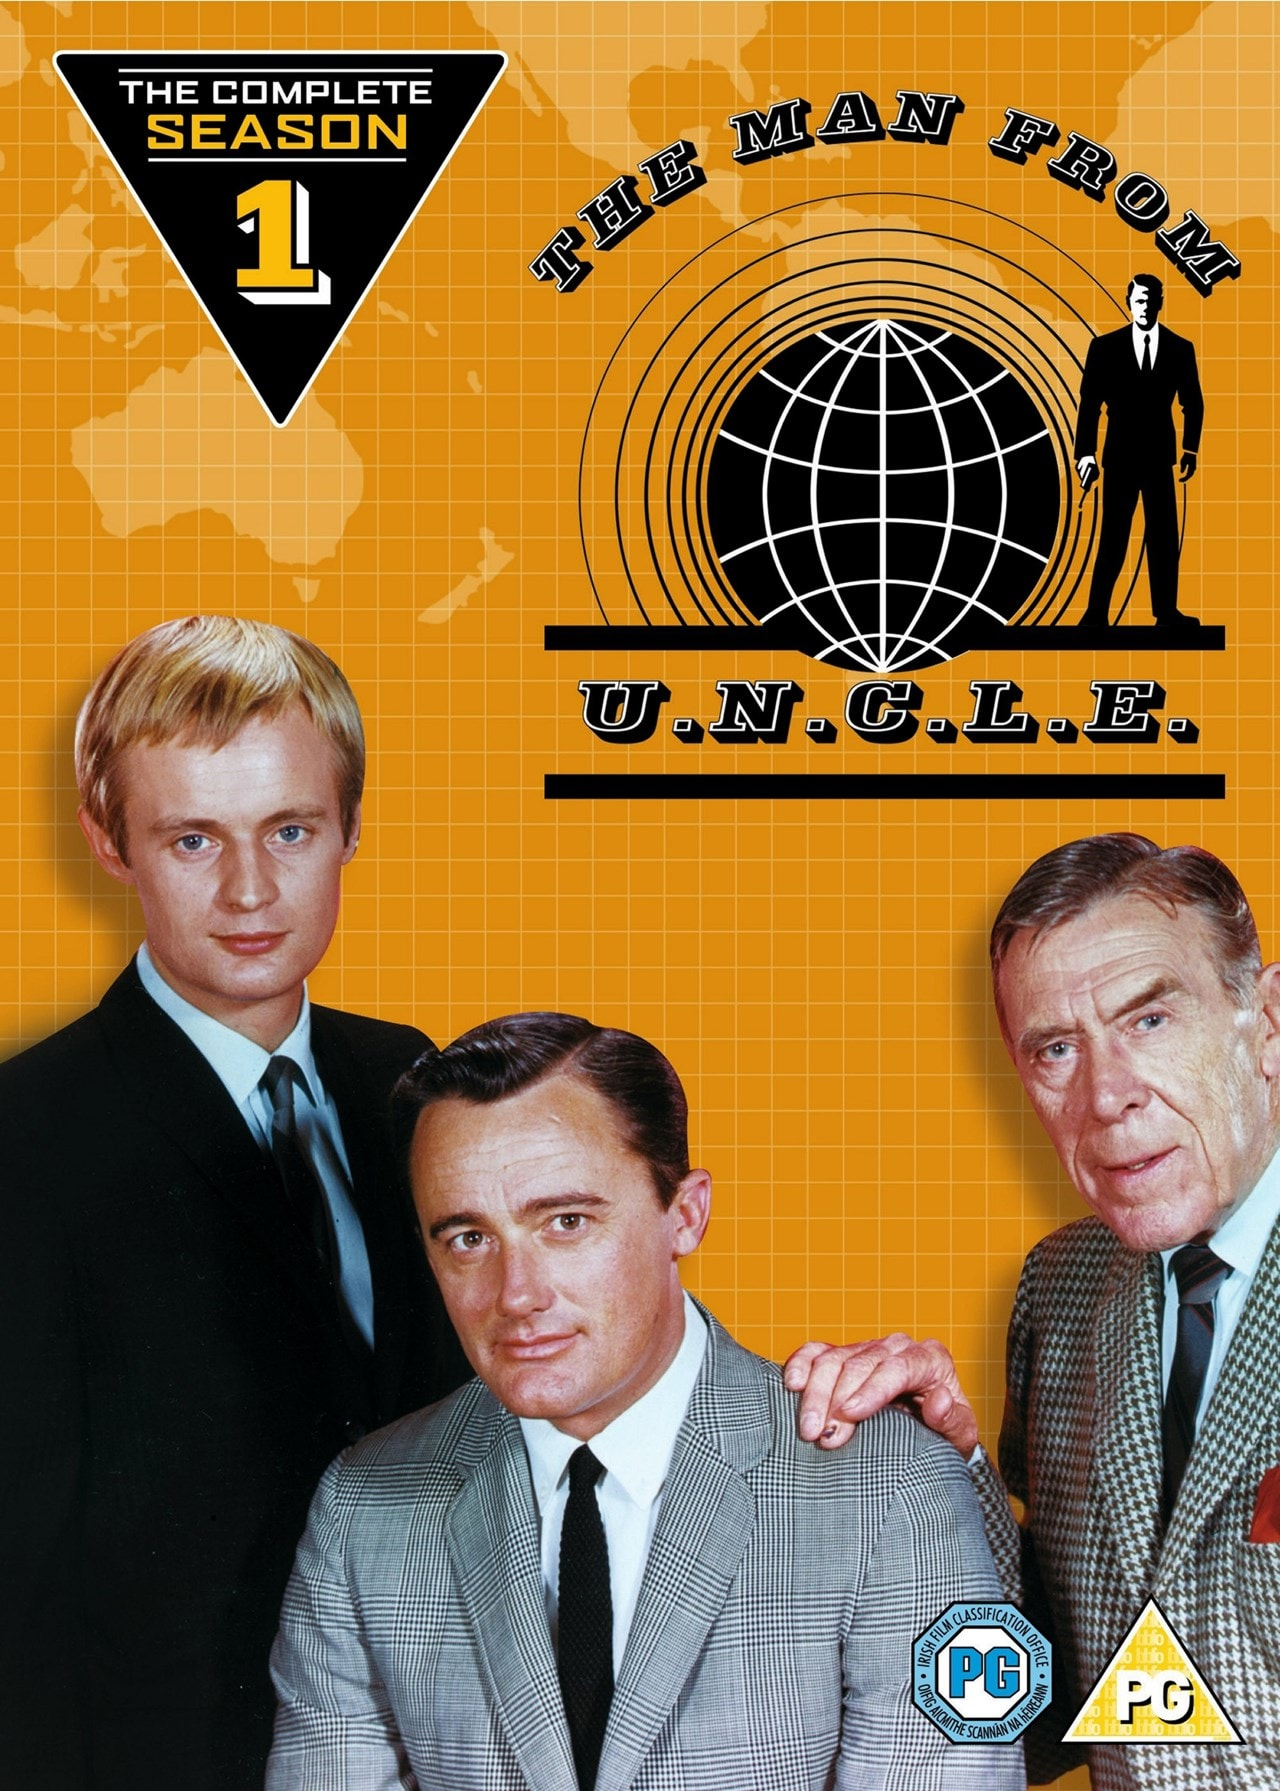 The Man from U.N.C.L.E.: The Complete Season 1 - 1